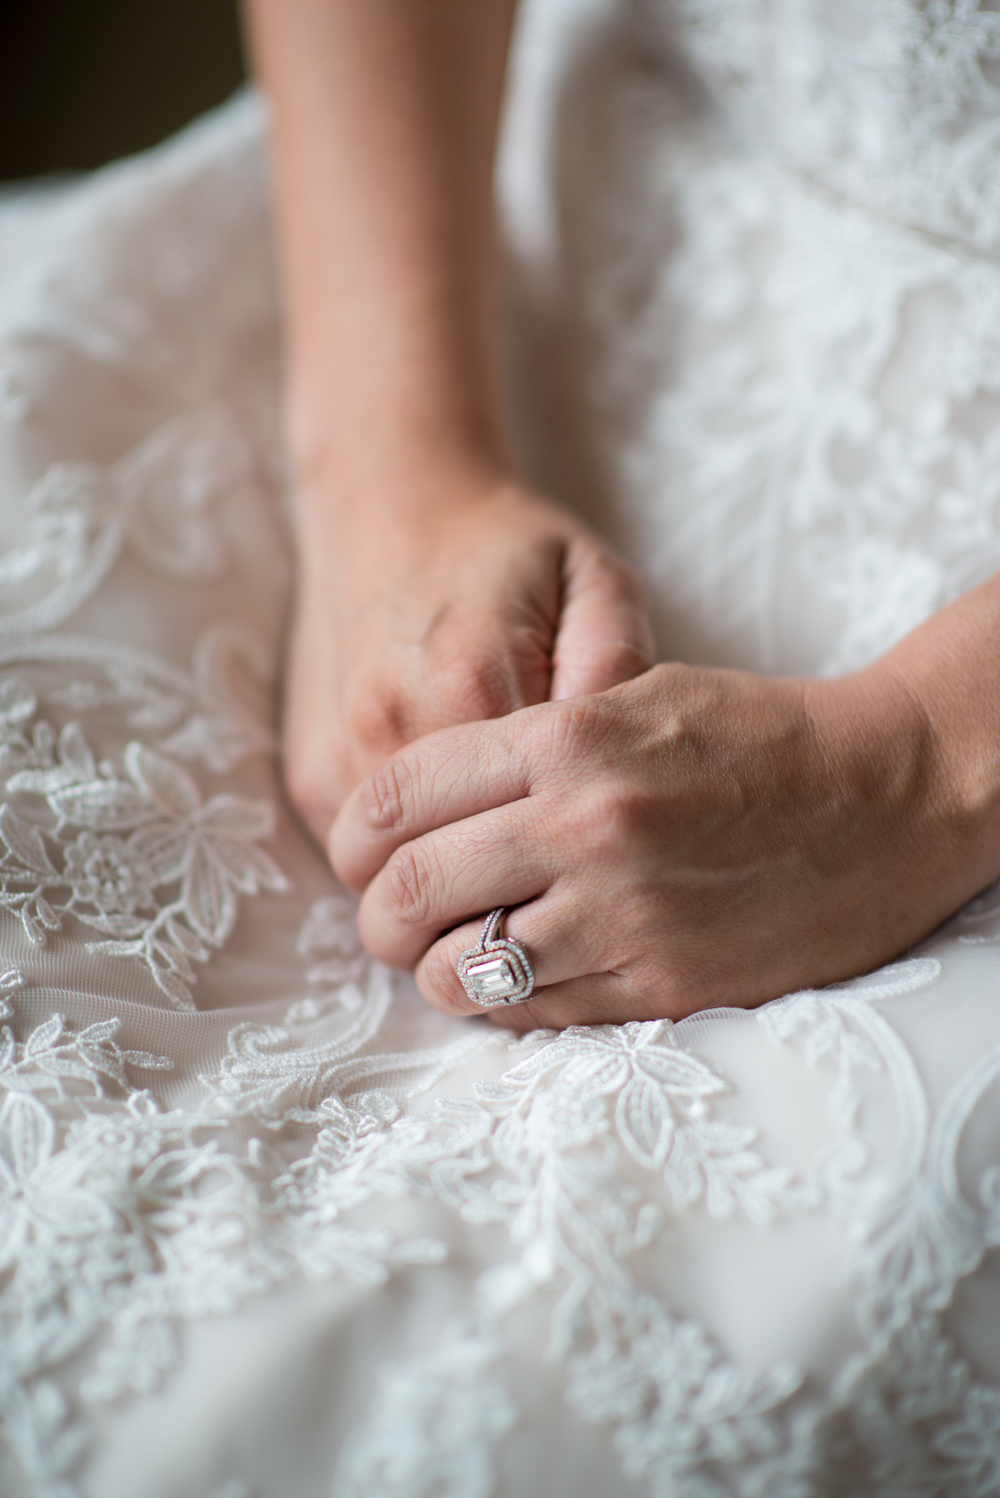 Acowsay_Cinema_MN_Wedding_Lace_Wedding_Ring.jpg